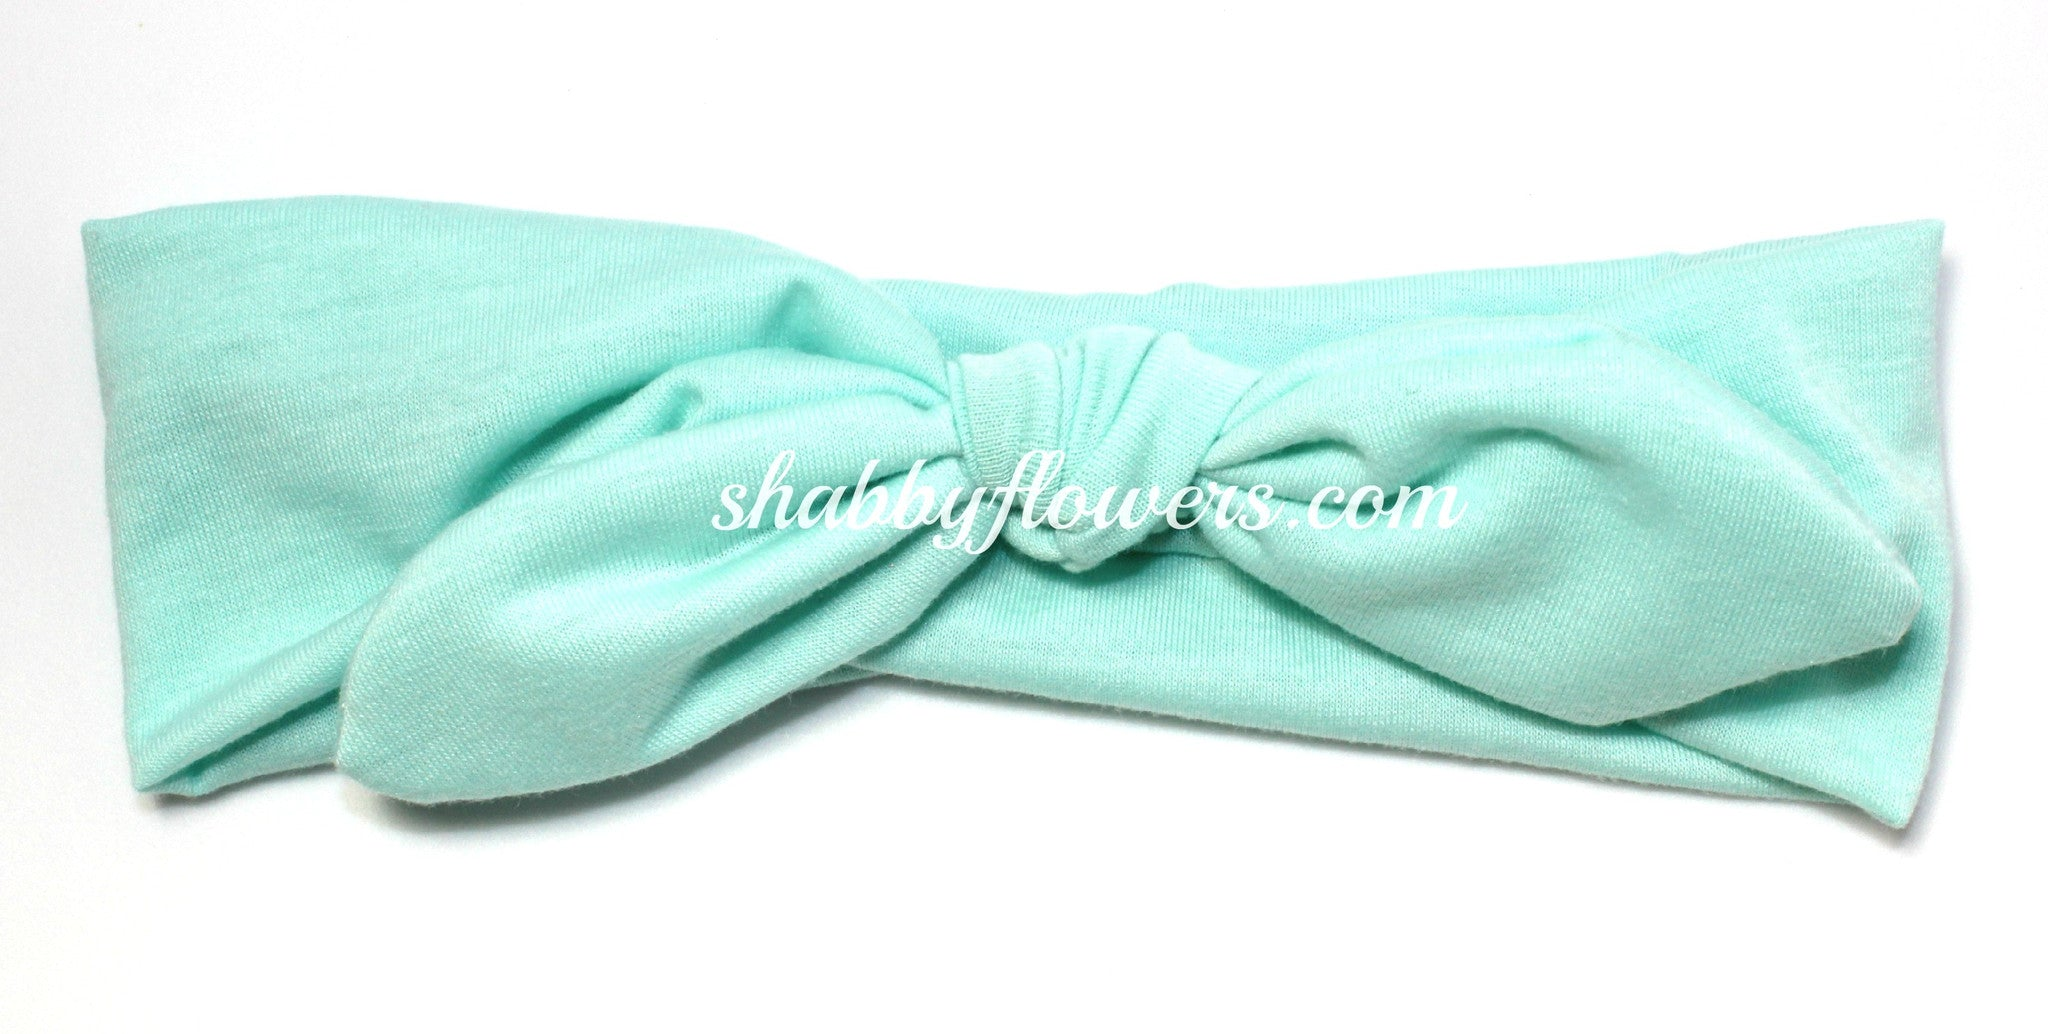 Knot Headband - Aqua - Small - shabbyflowers.com